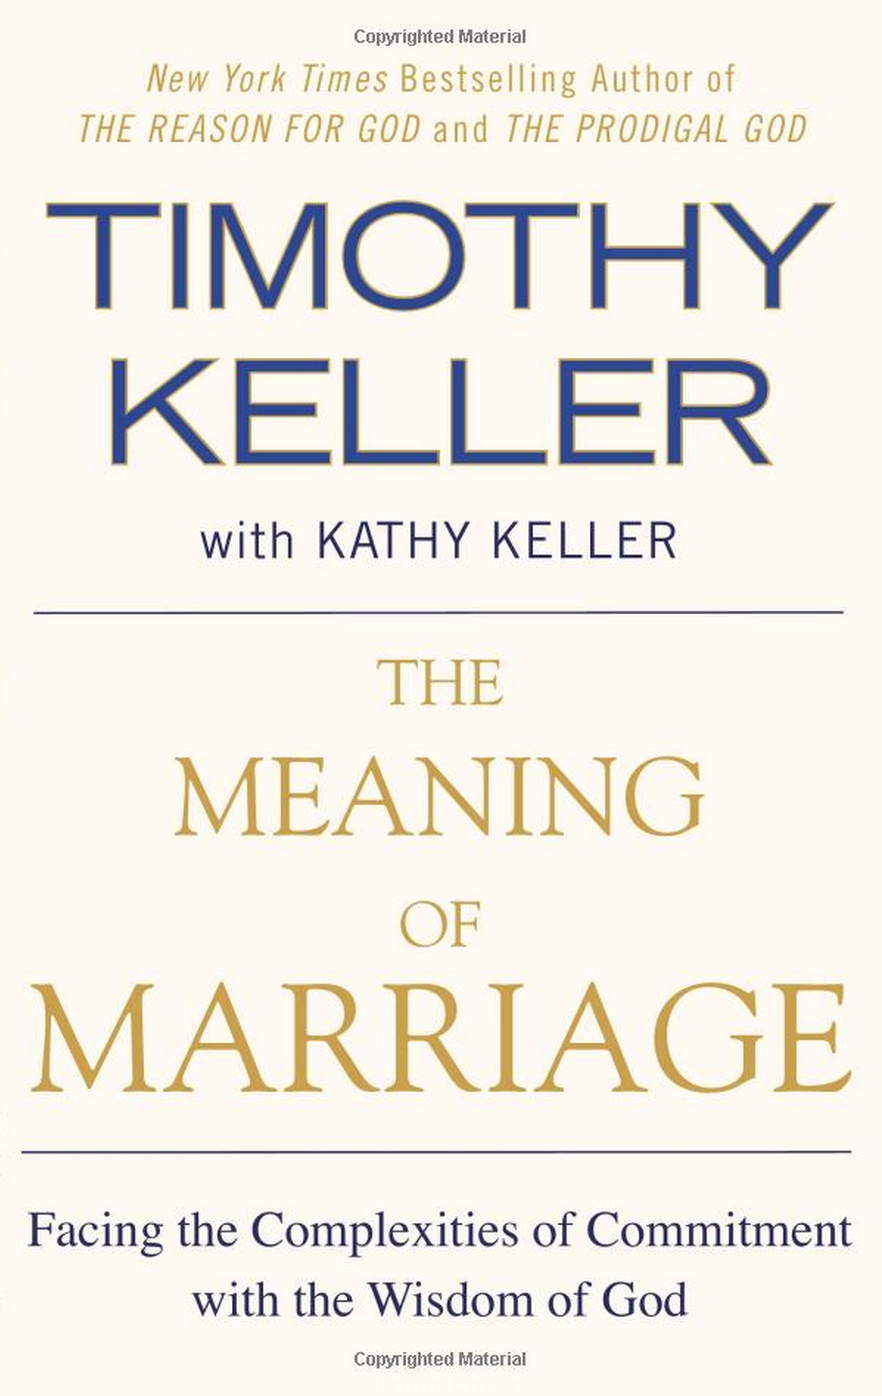 the meaning of marriage — timothy keller